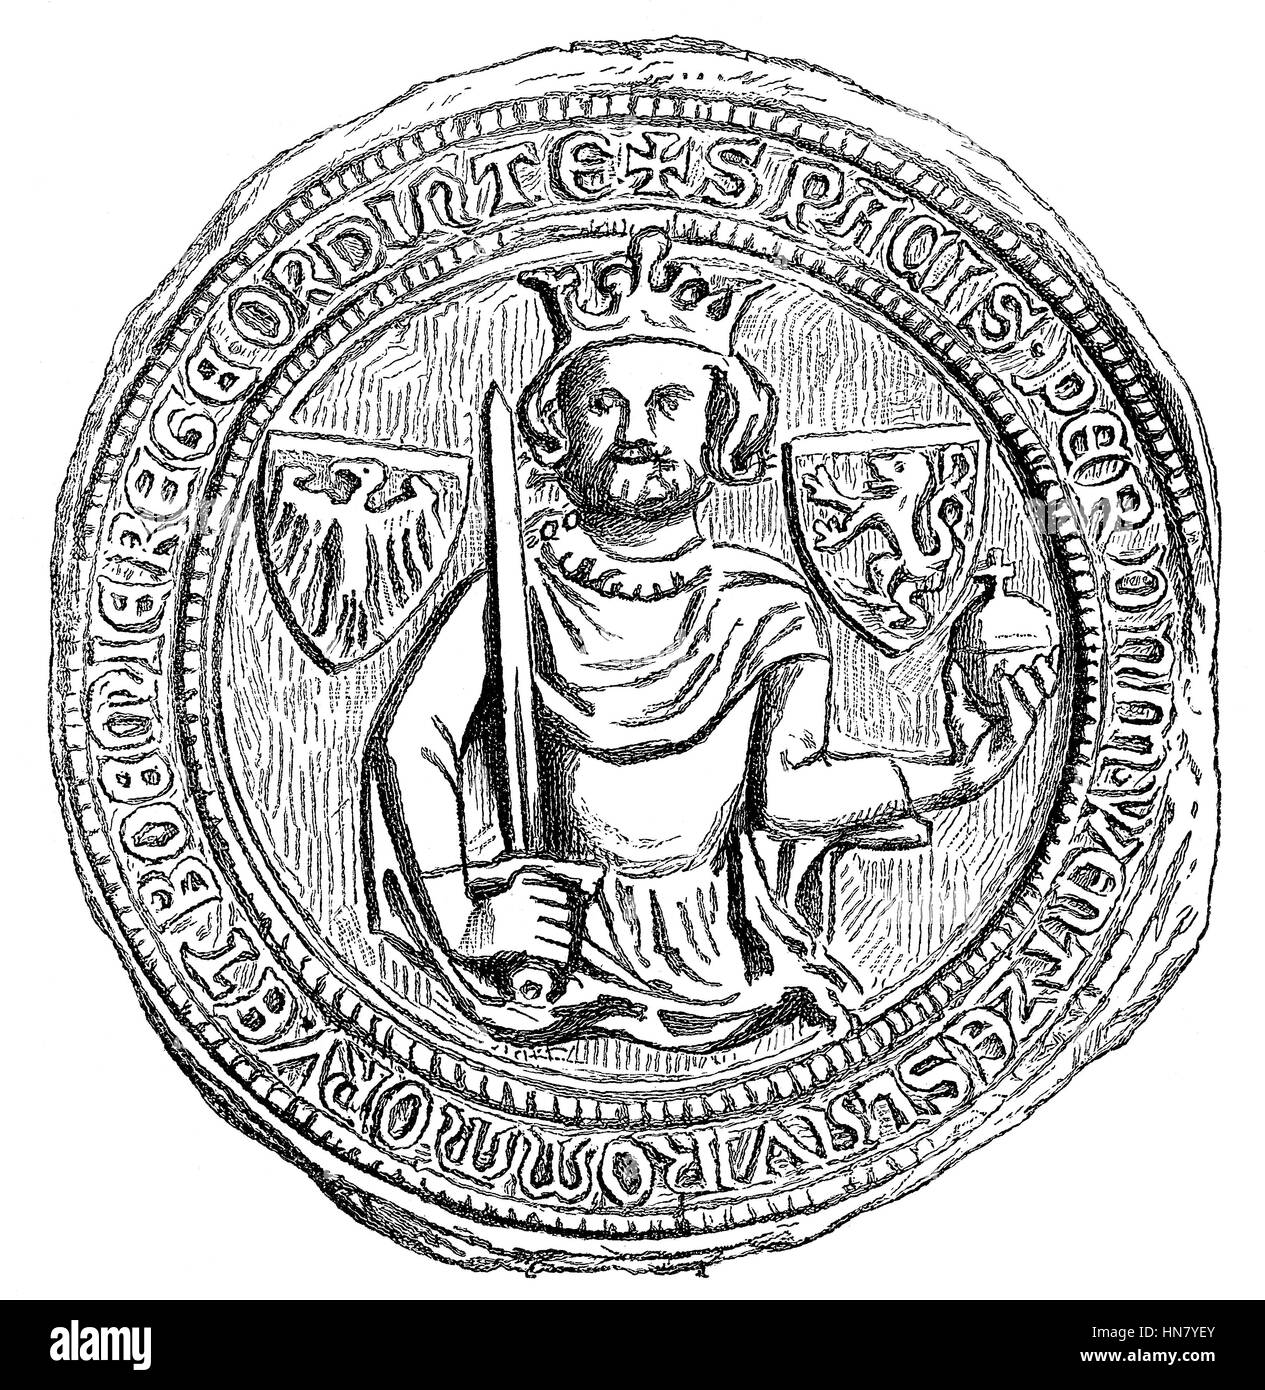 Seal of Wenceslaus, Wenceslas, Wenzel, nicknamed the Idle, 1361-1419, German King, King of Bohemia as Wenceslaus - Stock Image